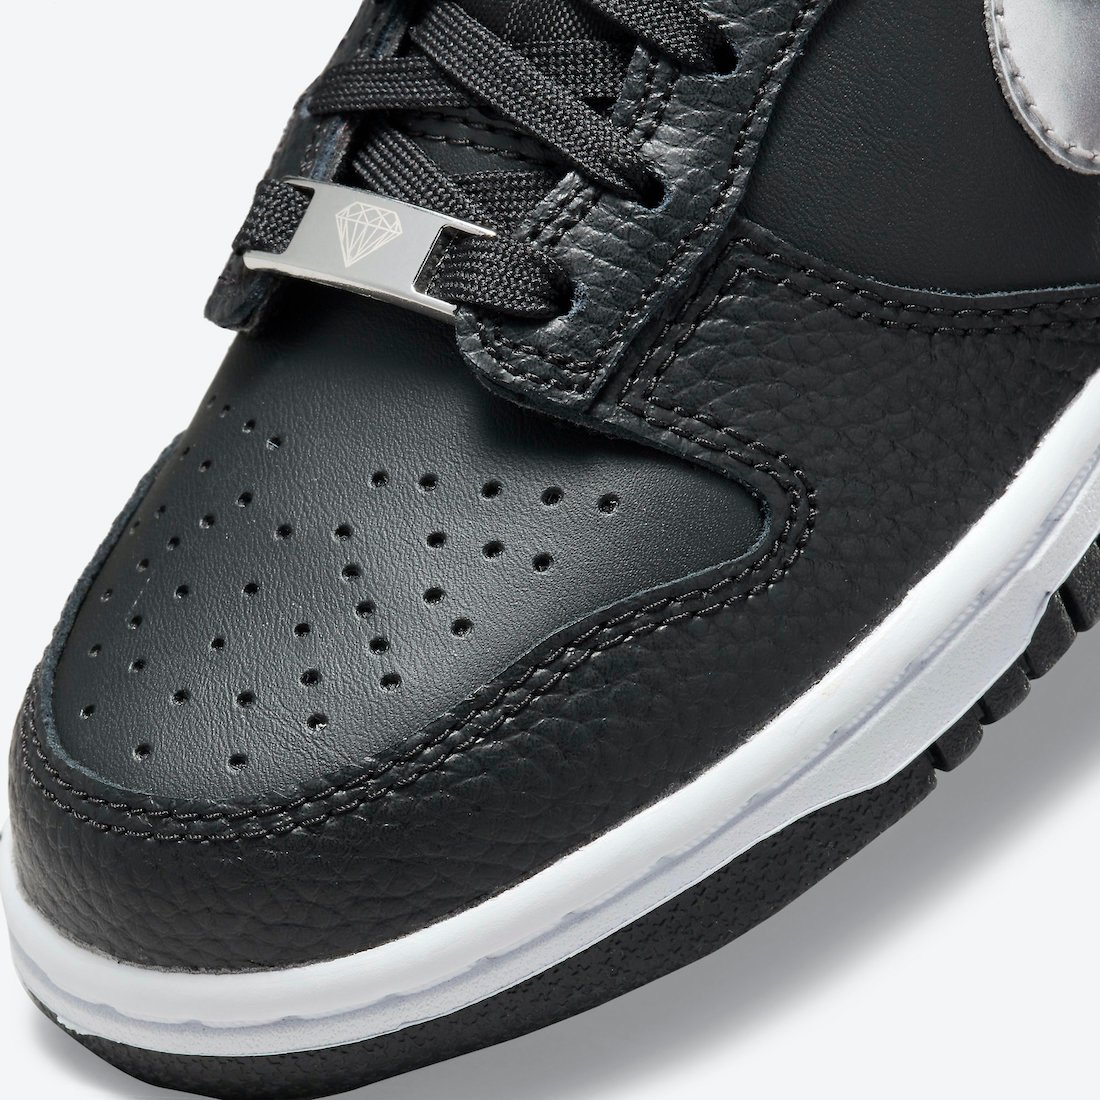 nike dunk low gs black sliver dc9560 001 release date info 6